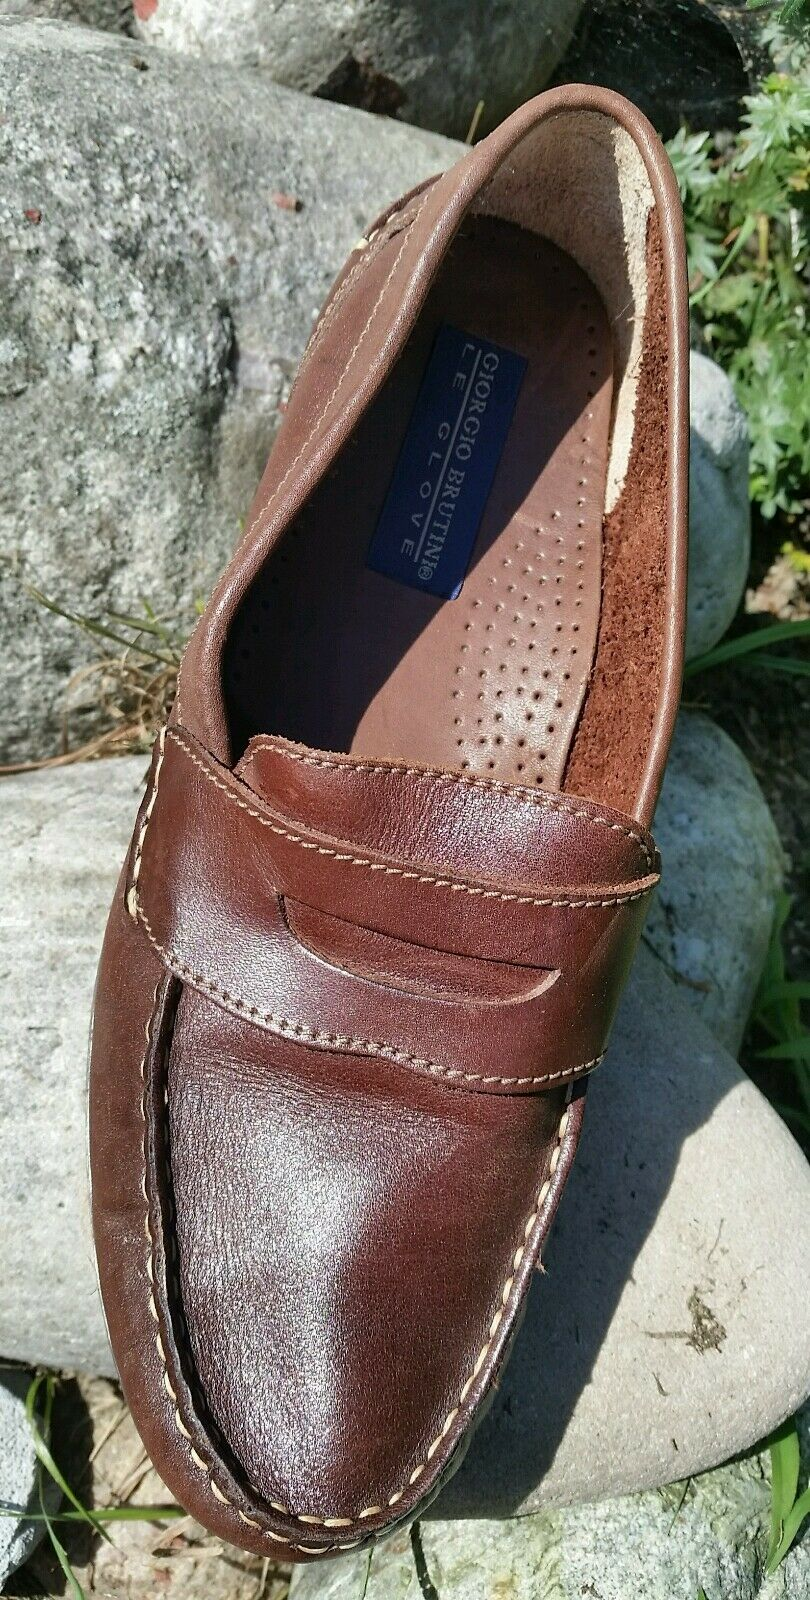 Giorgio Brutini Loafer Shoes Size 10 Brown Loafer Brutini Flat Comfortable Corporate Casual 49aa6e